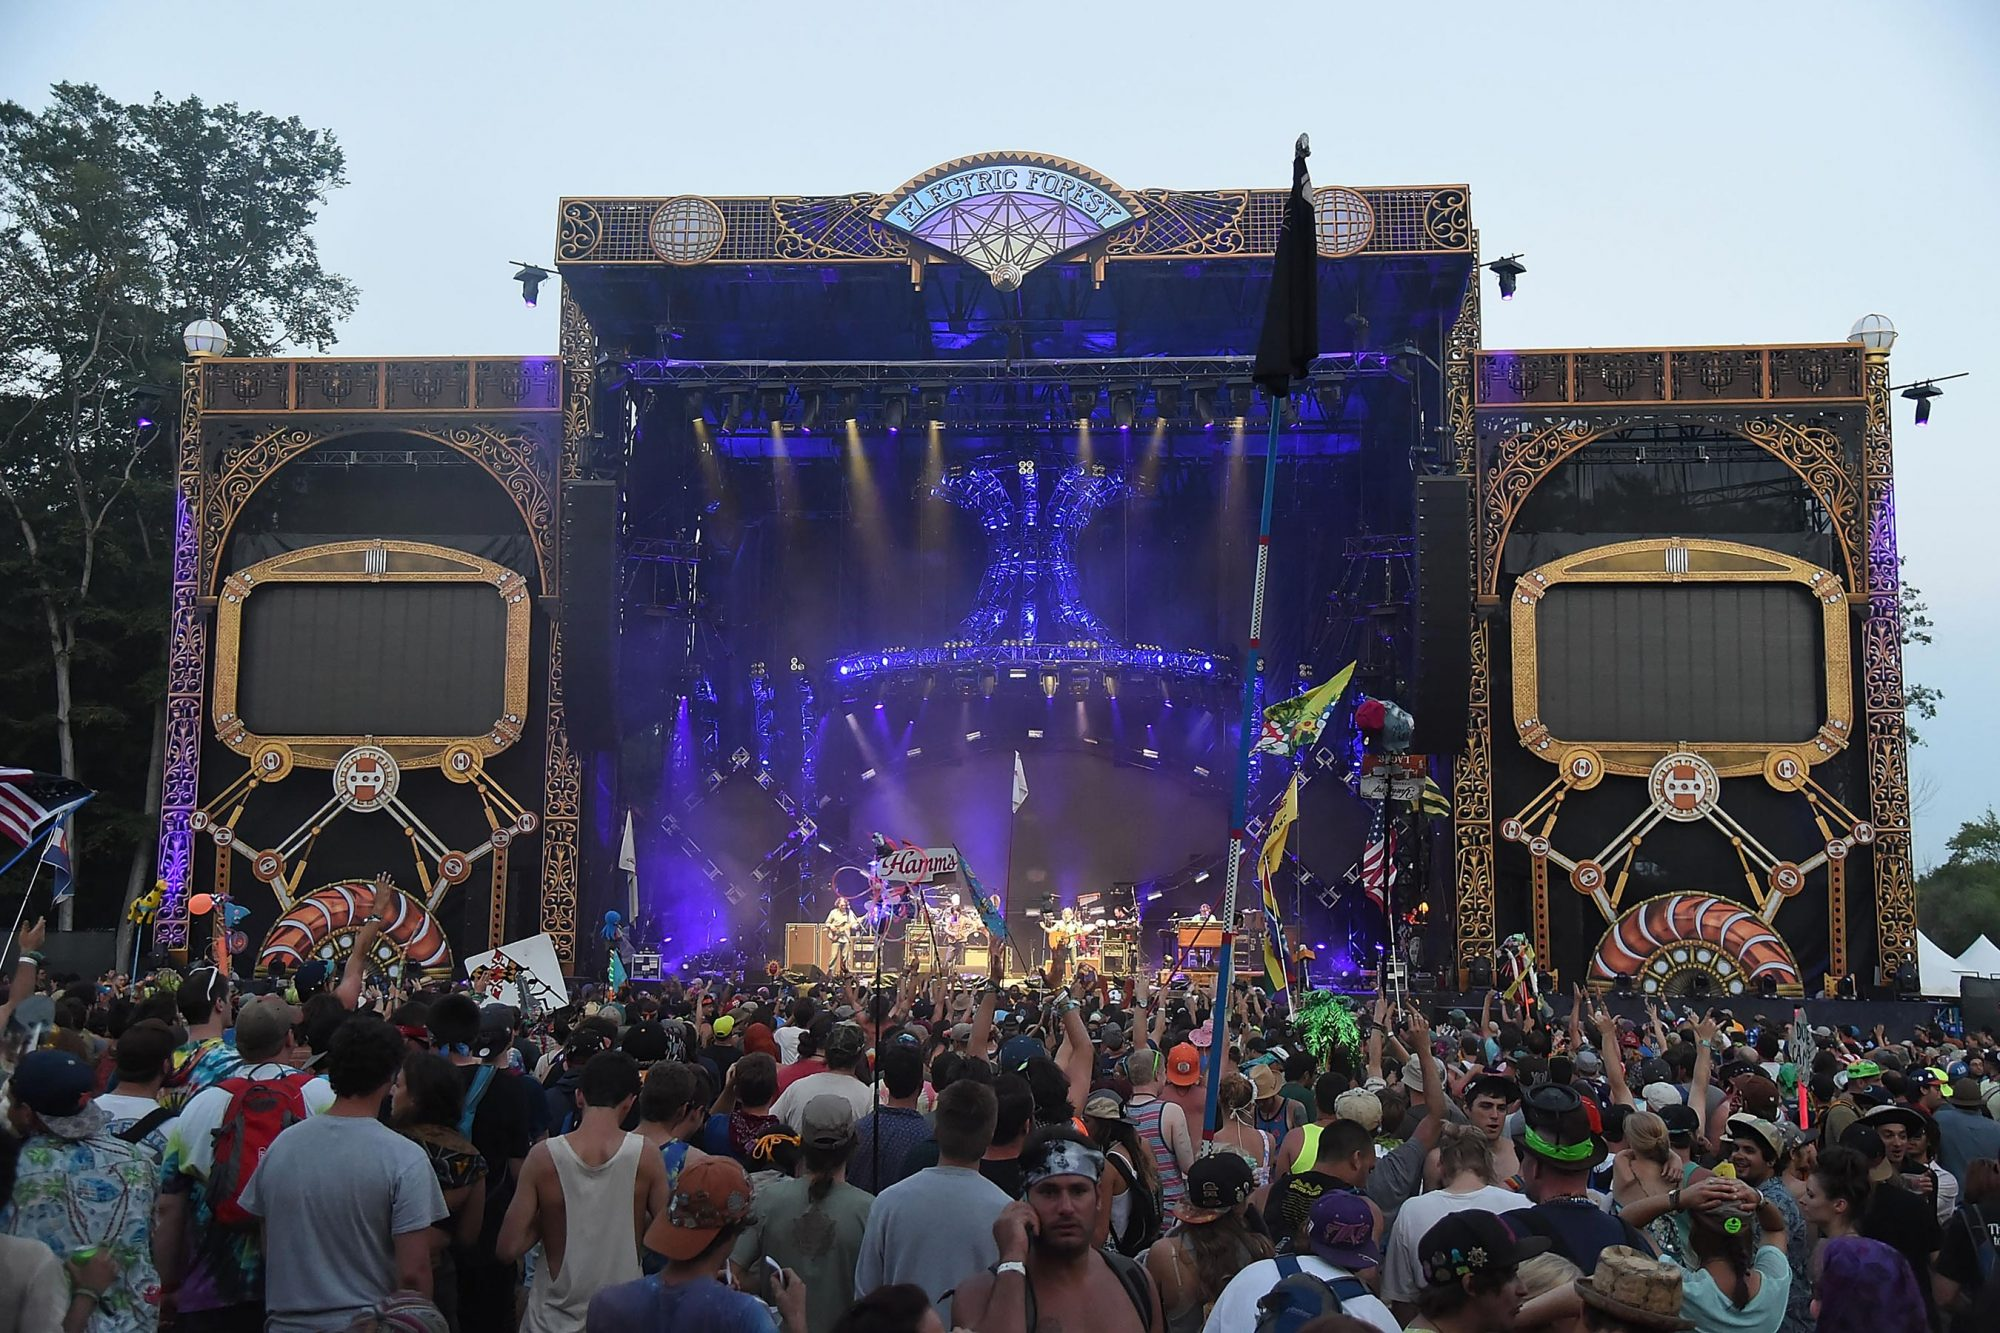 Electric Forest Festival - Day 4